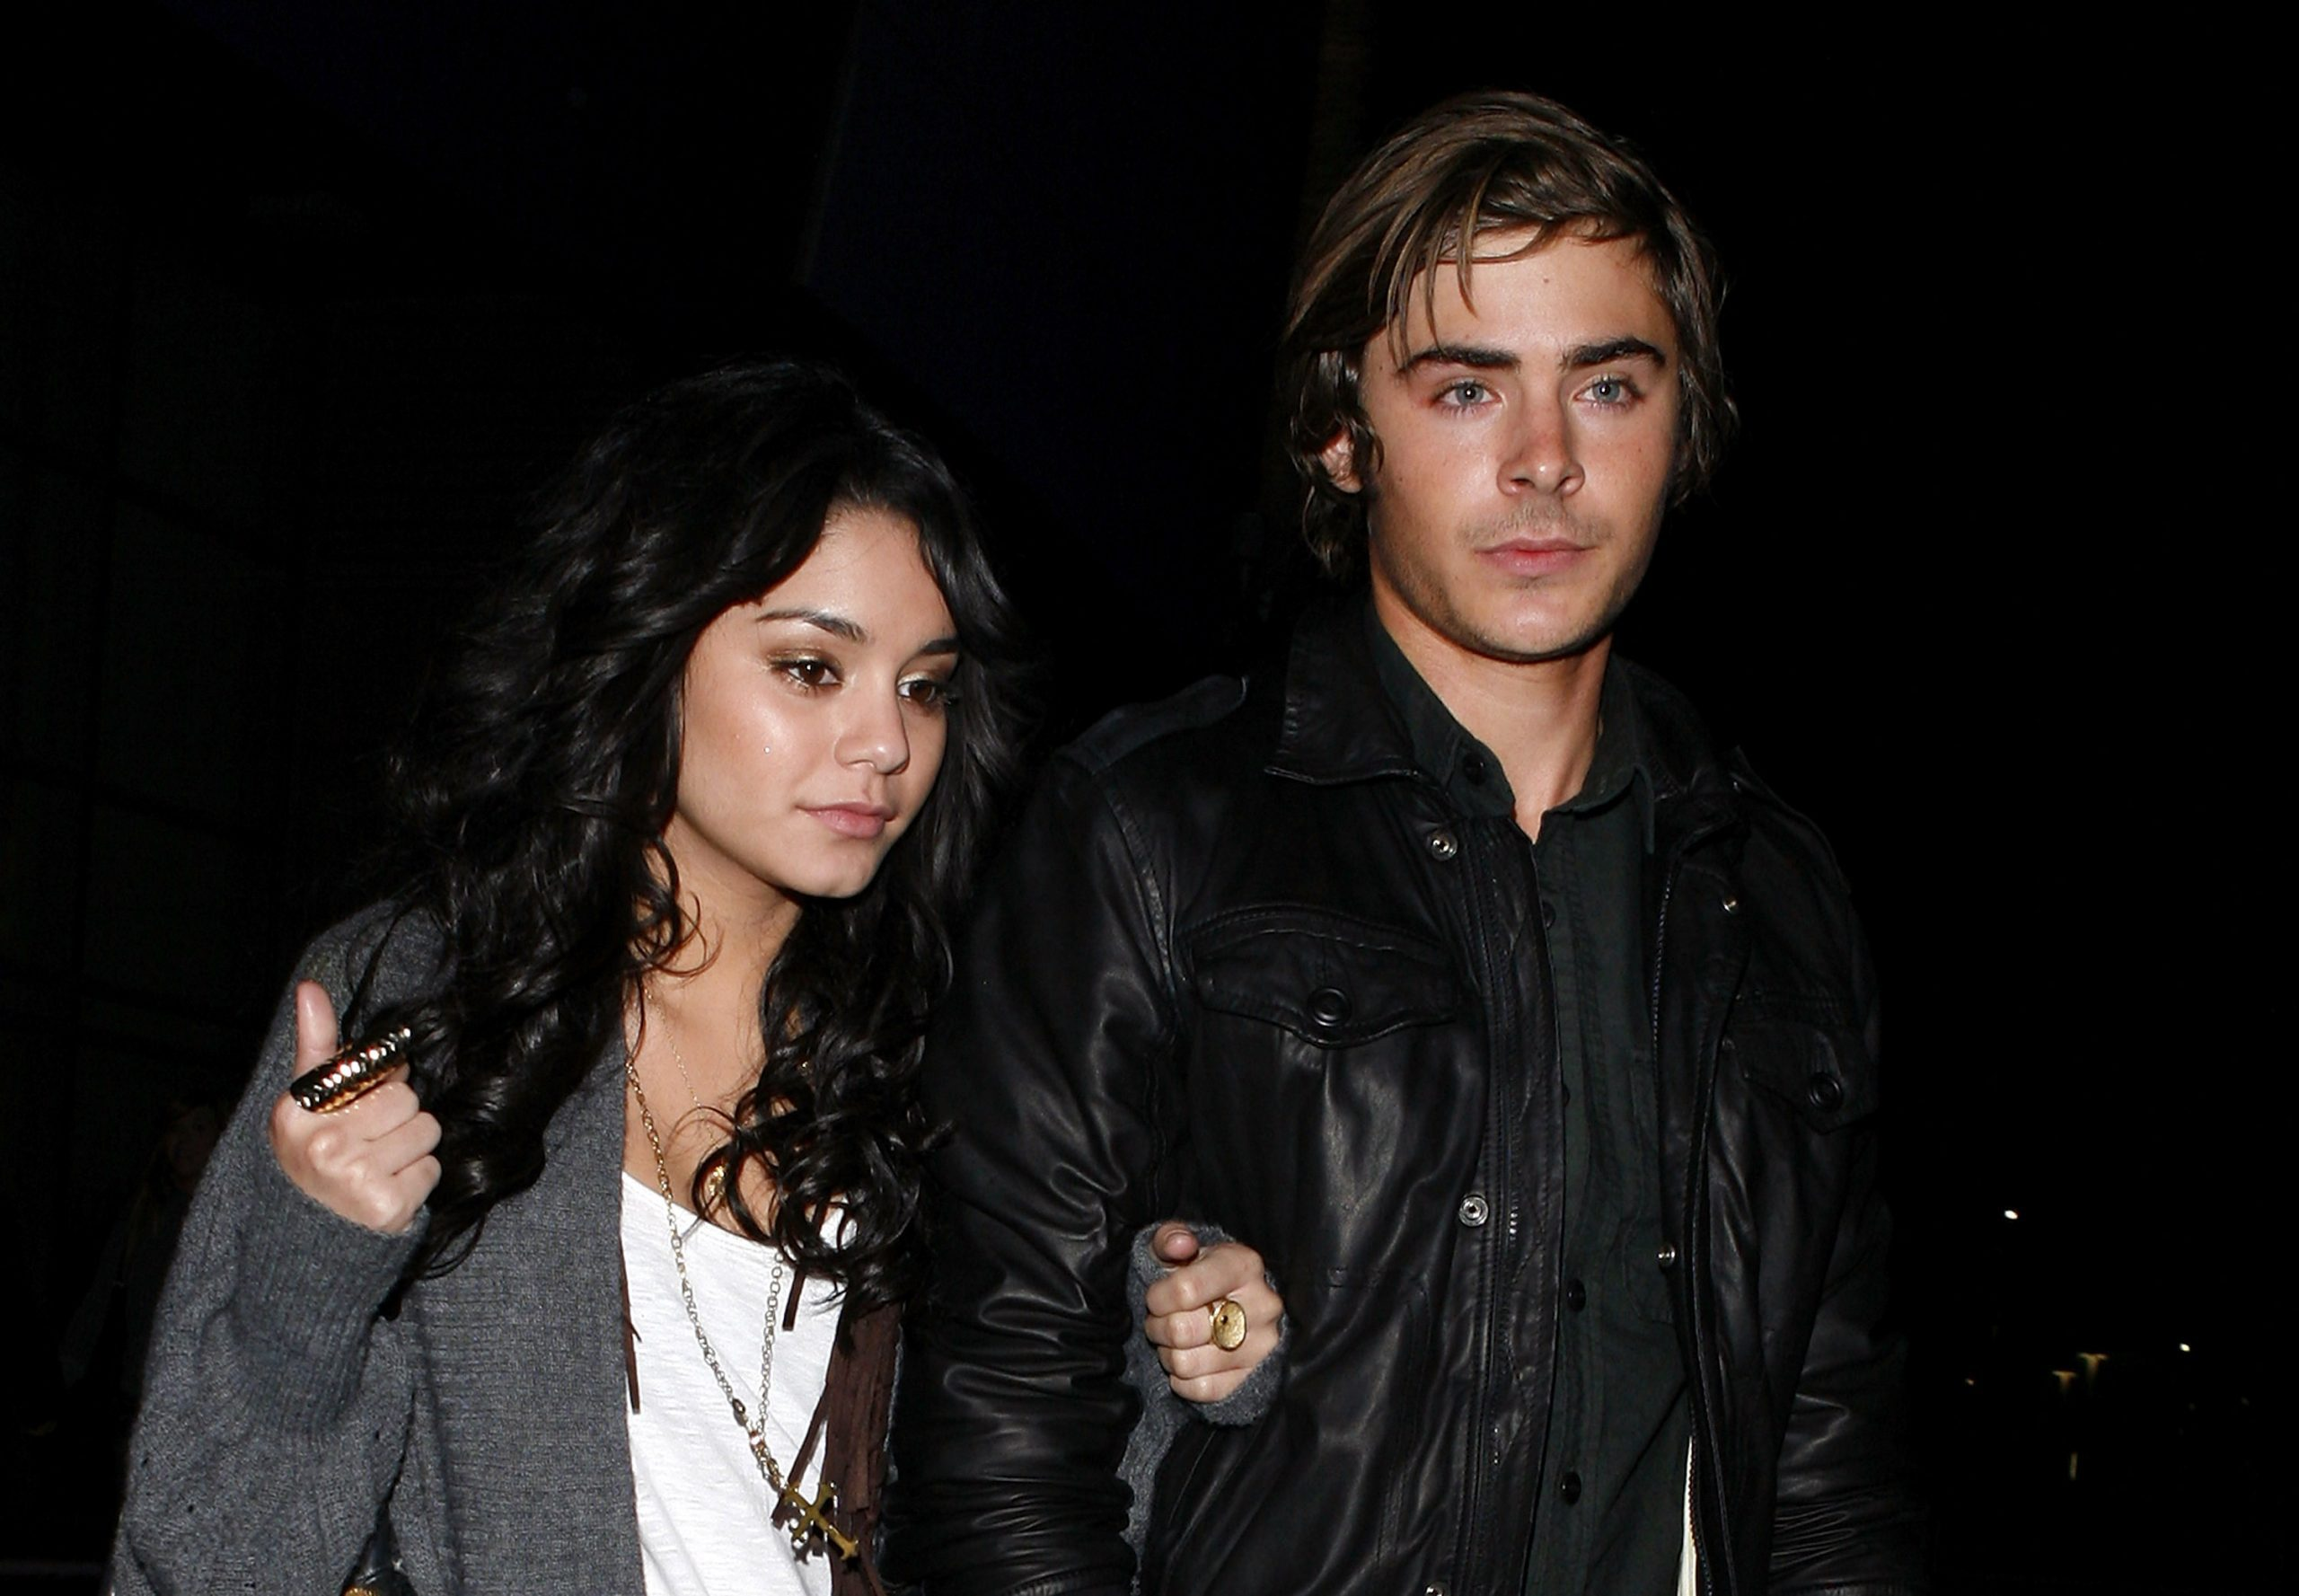 Did Zac Efron And Vanessa Hudgens Dating In Real Life?